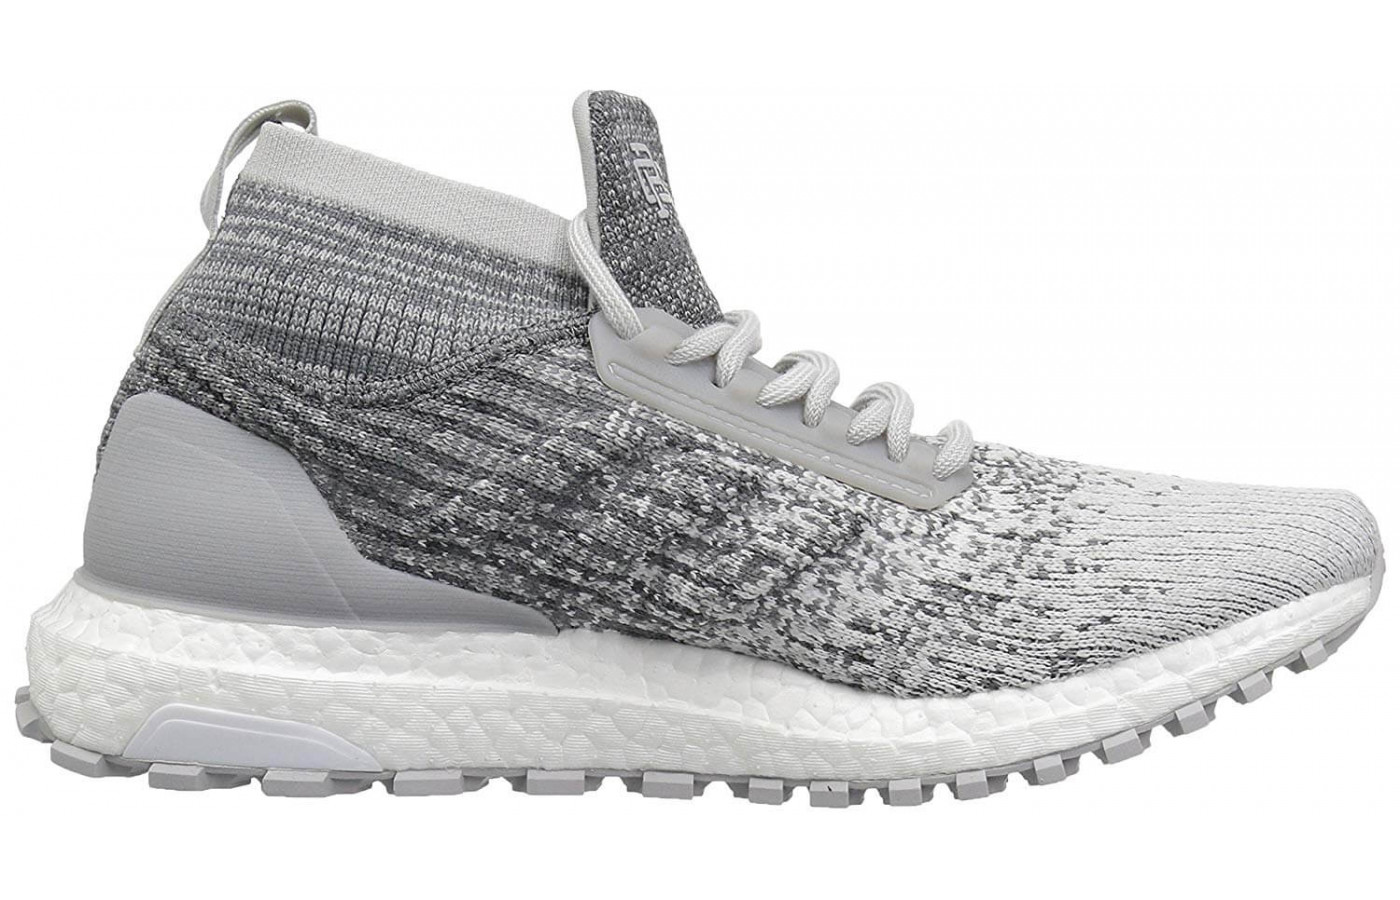 best website 49ca0 ac38e Adidas X Reigning Champ Ultraboost